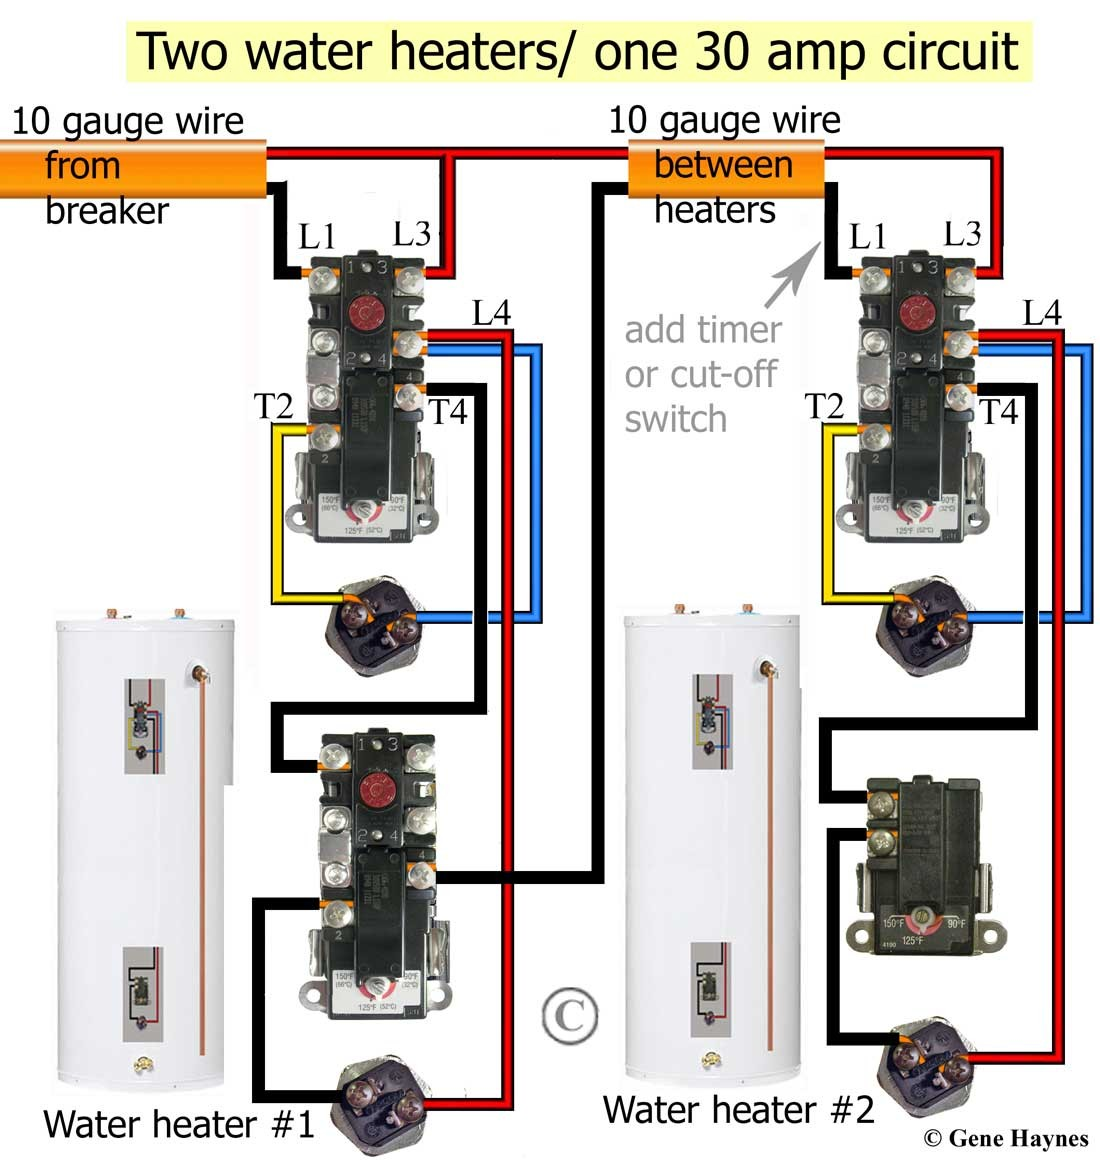 Simultaneous wiring will heat top of tank first Redundant will turn ON as soon as cold water enters tank How electric water heater works